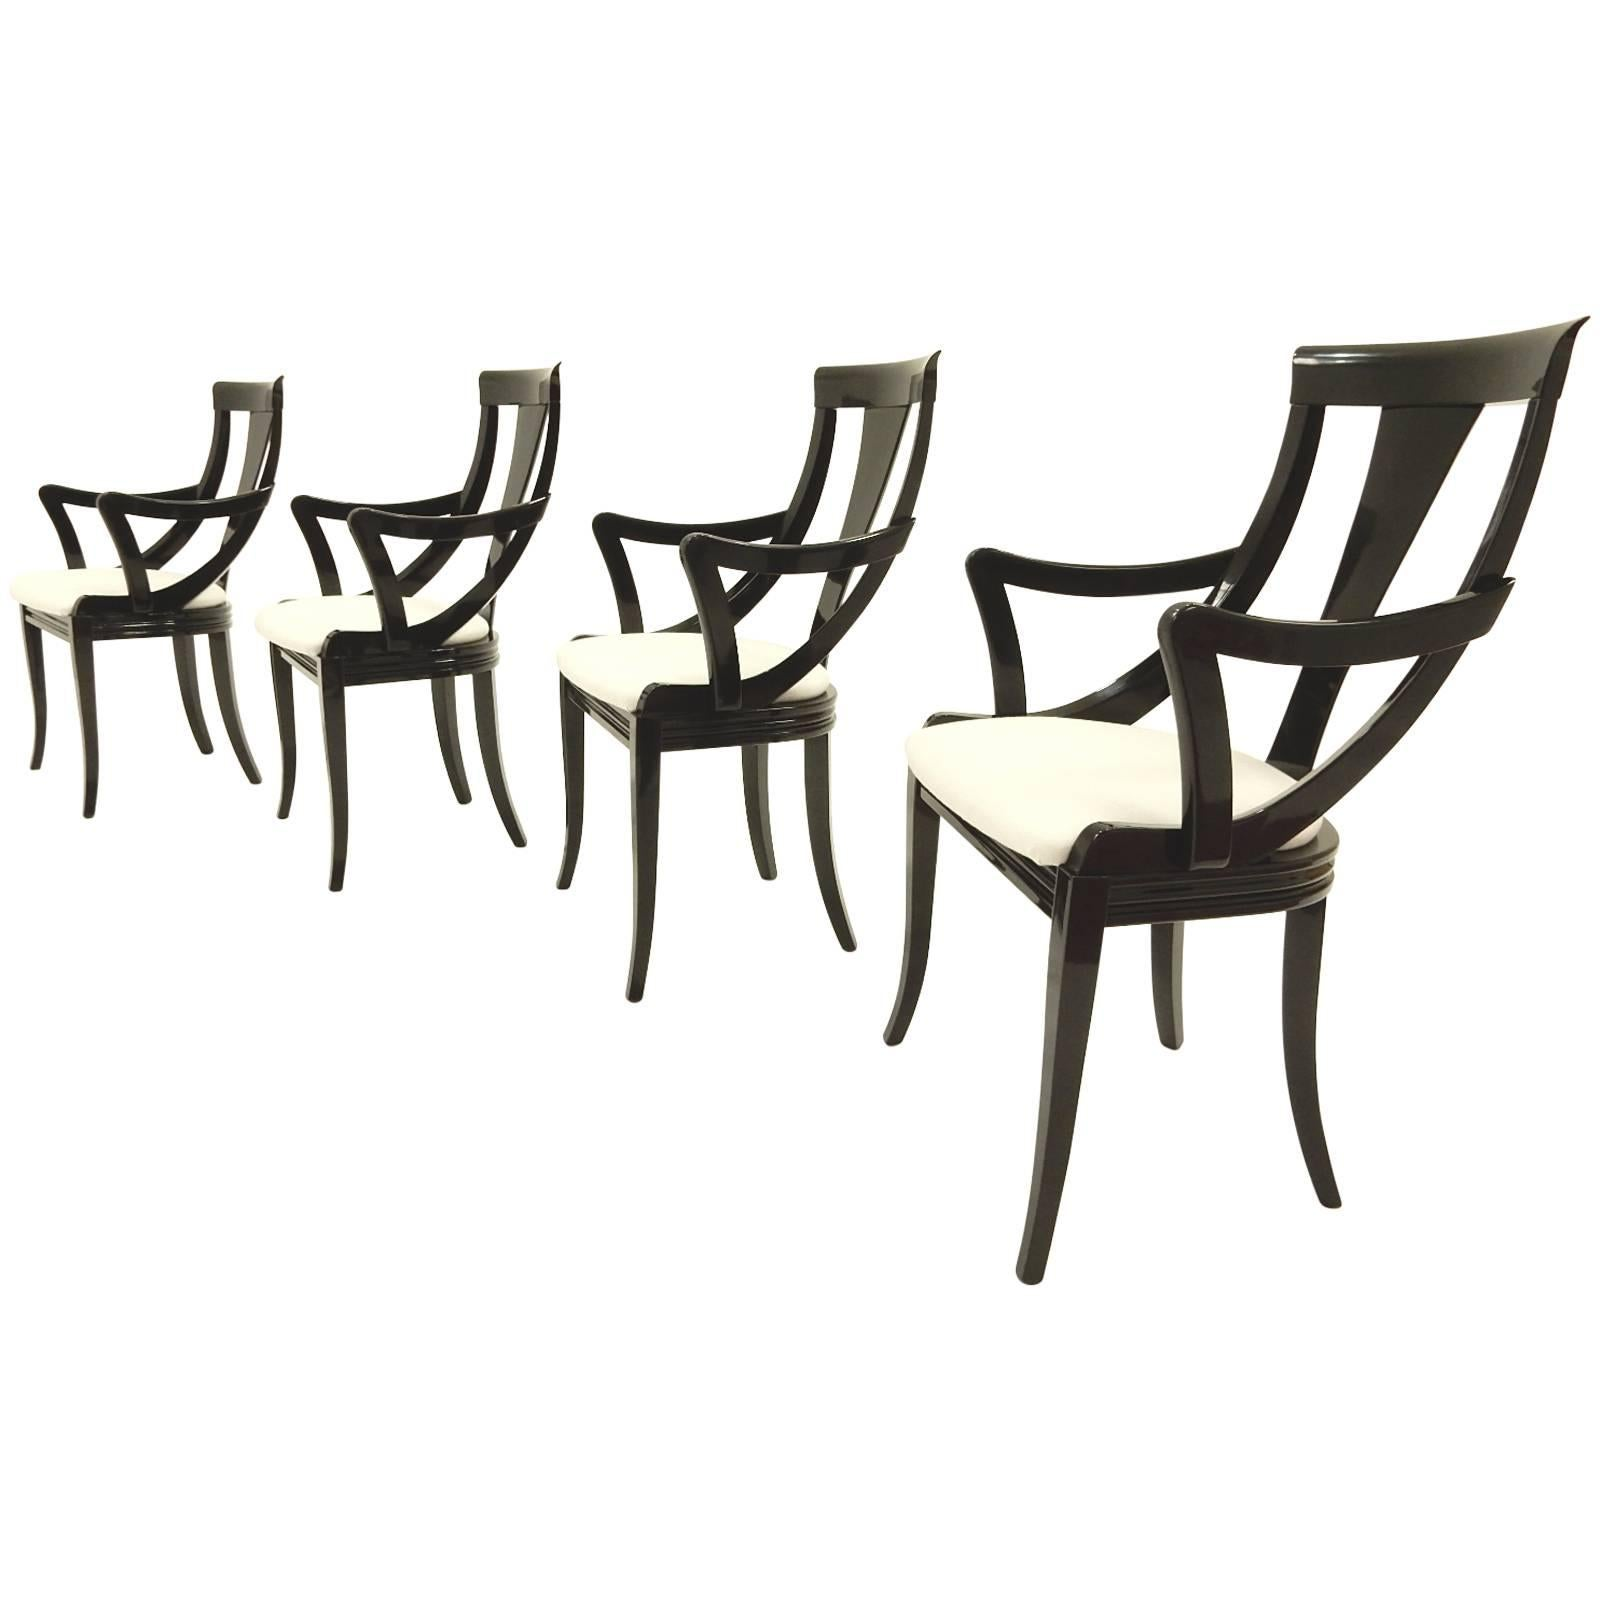 Sculptural Black Lacquer Dining Chairs by Pietro Costantini, Made in Italy